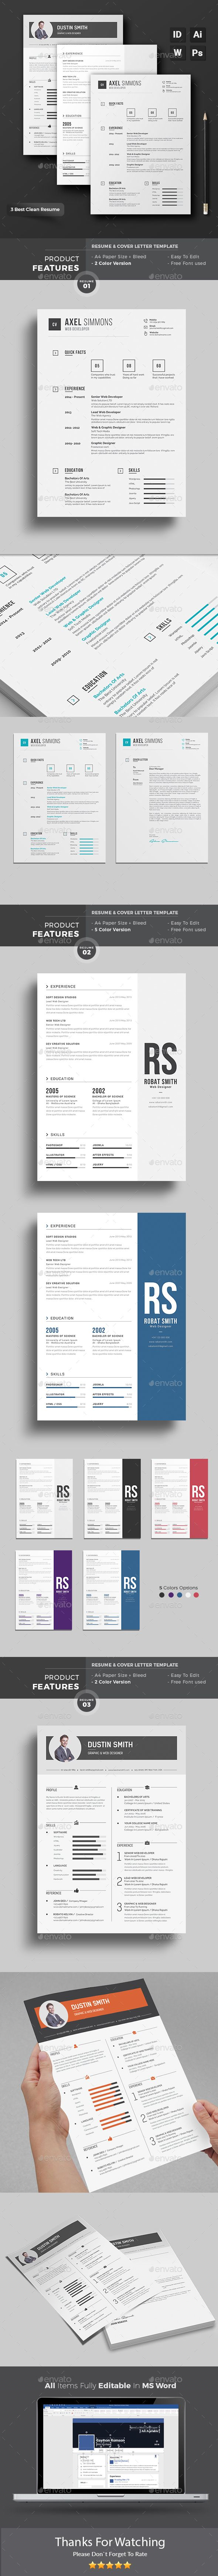 download job resume format%0A MS Word Resume  Creative Cv TemplateModern Resume TemplateProfessional